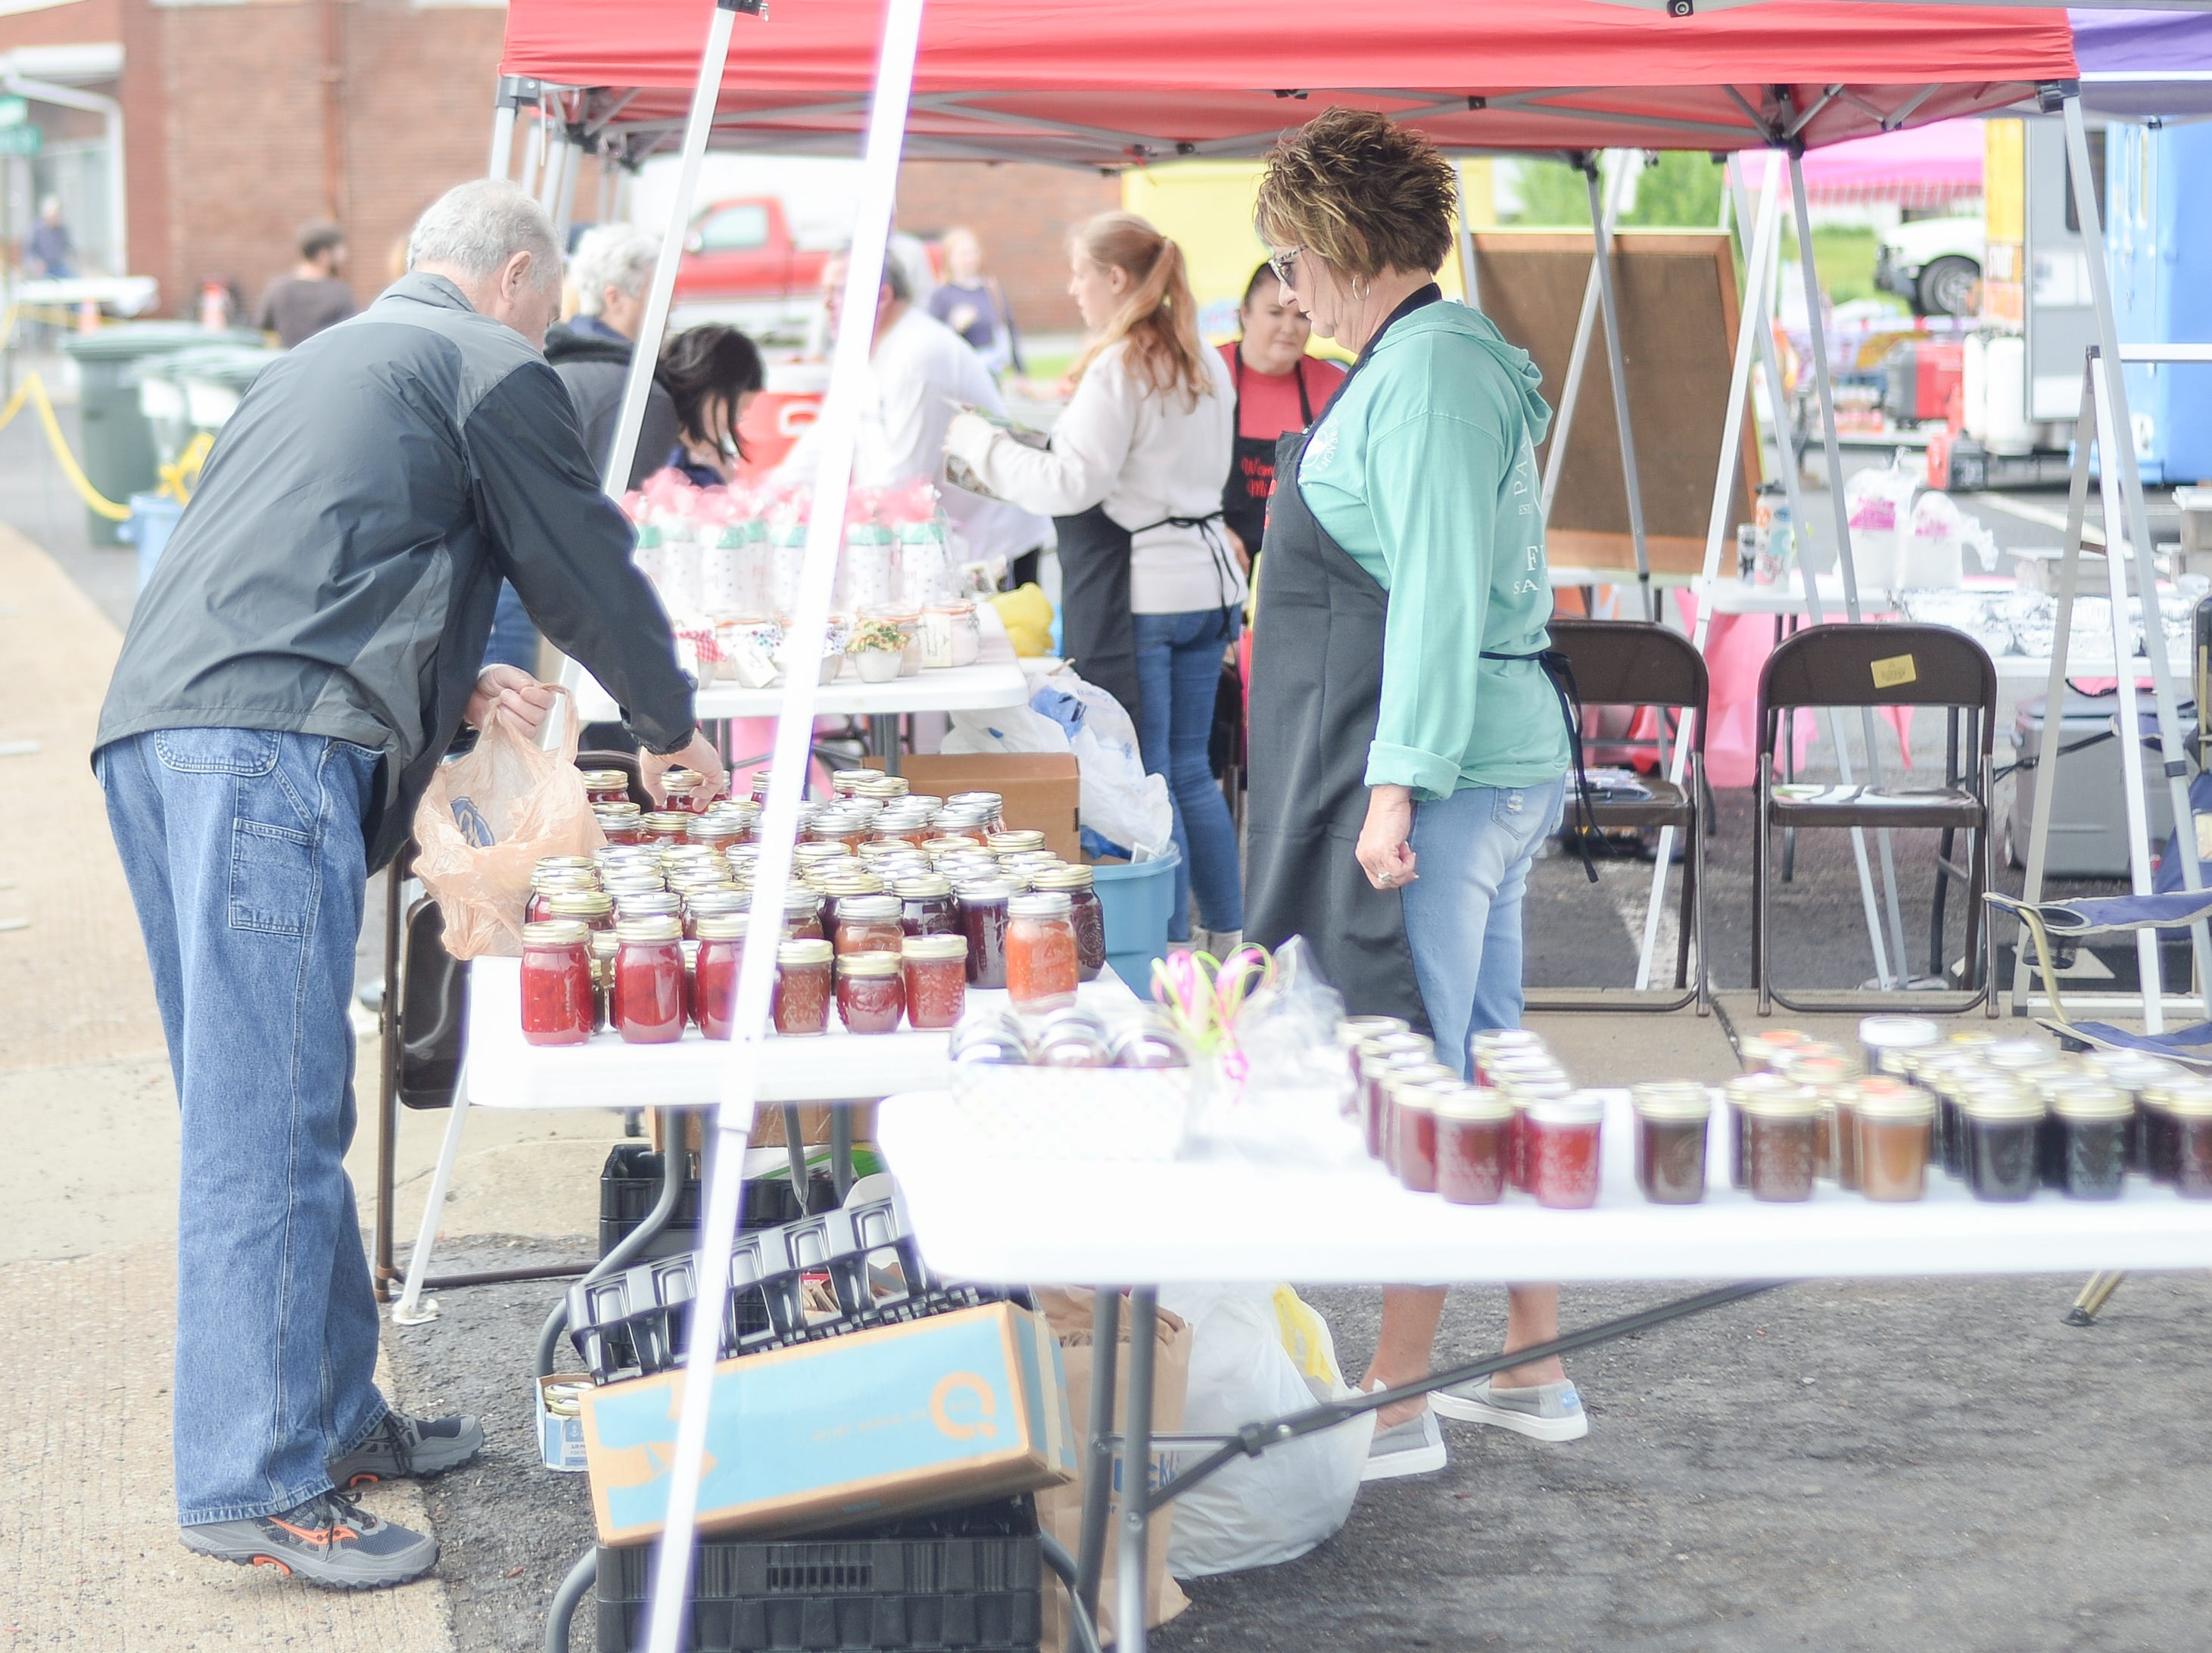 Attendees check out vendors during the 78th Annual Middle Tennessee Strawberry Festival presented by the Portland Chamber of Commerce in Portland on Saturday, May 11.